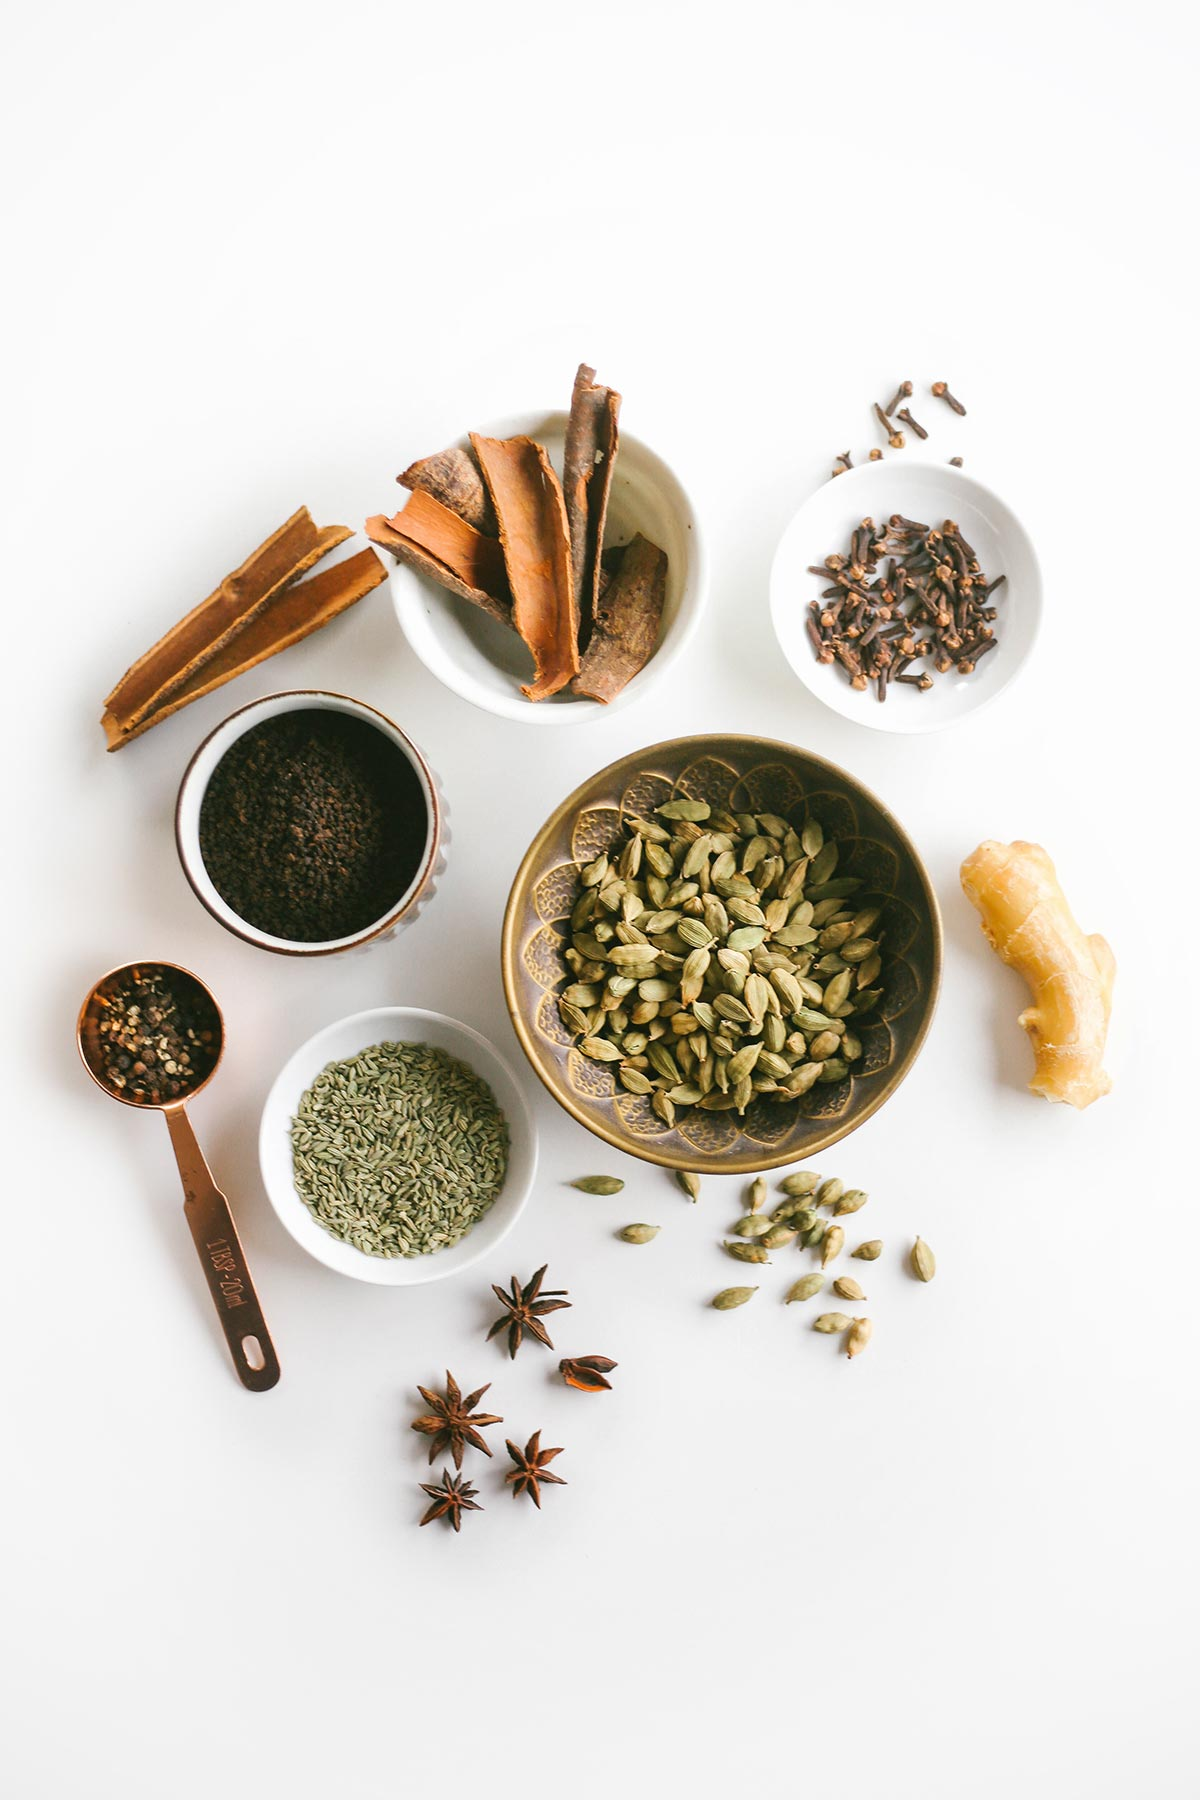 Masala chai tea for keto and low carb. Authentic Indian recipe with whole spices from scratch.